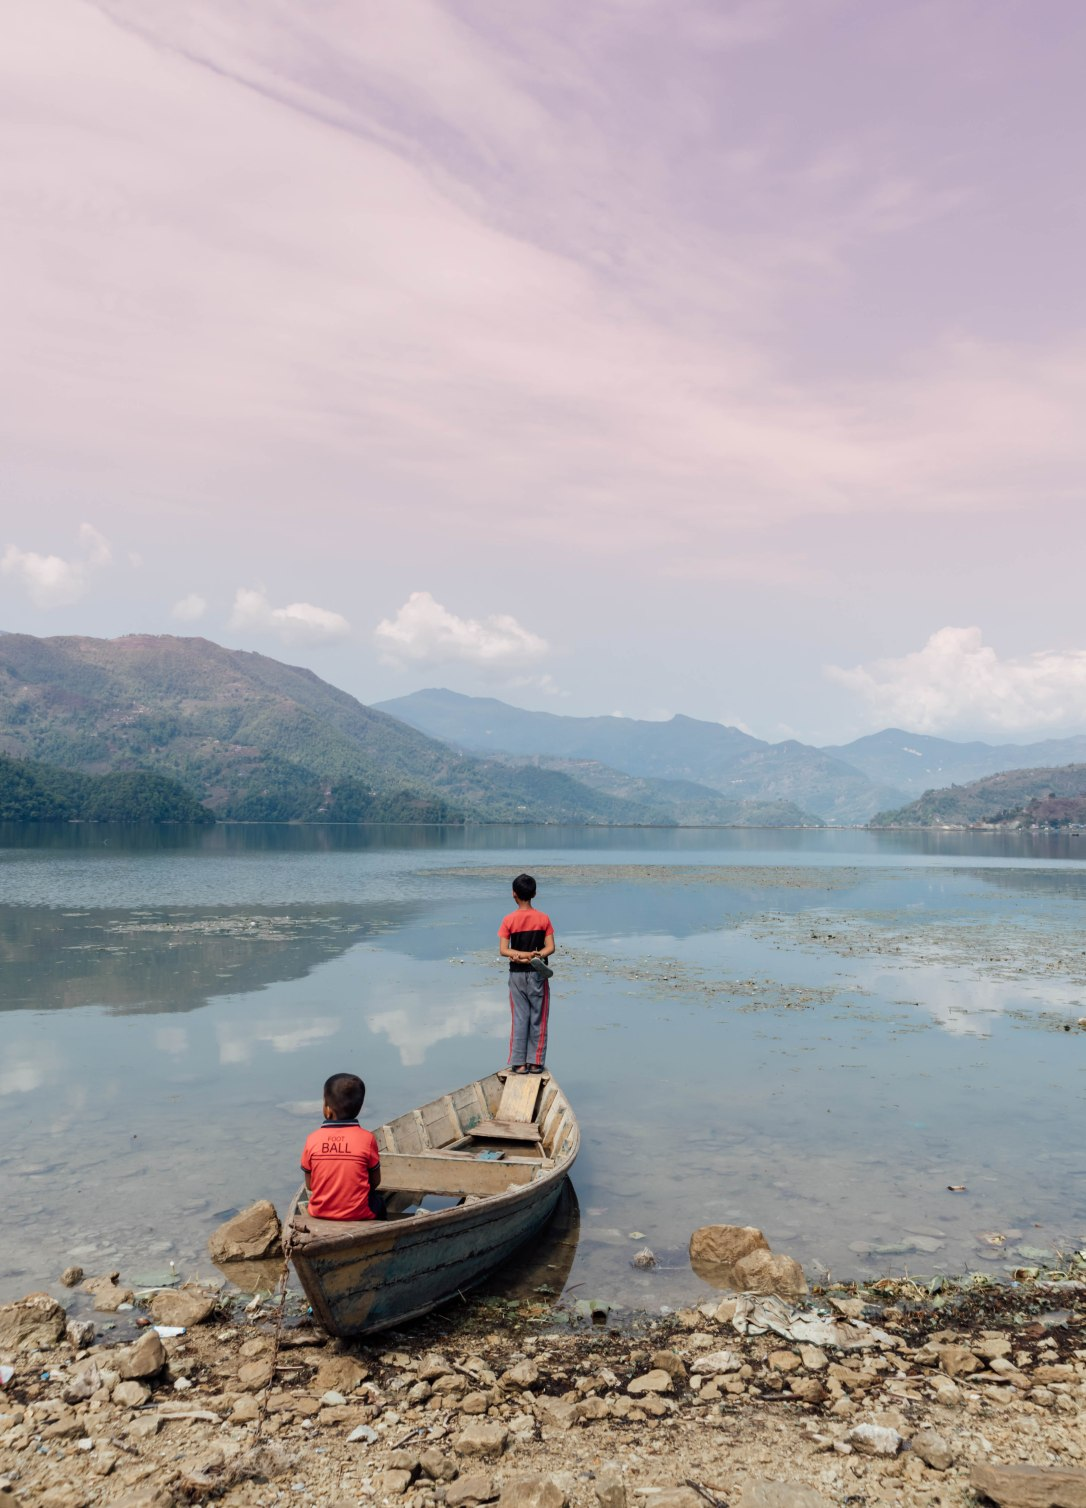 Pokhara, Lake, Fishing, Local People, Landscape, Views, Sunset